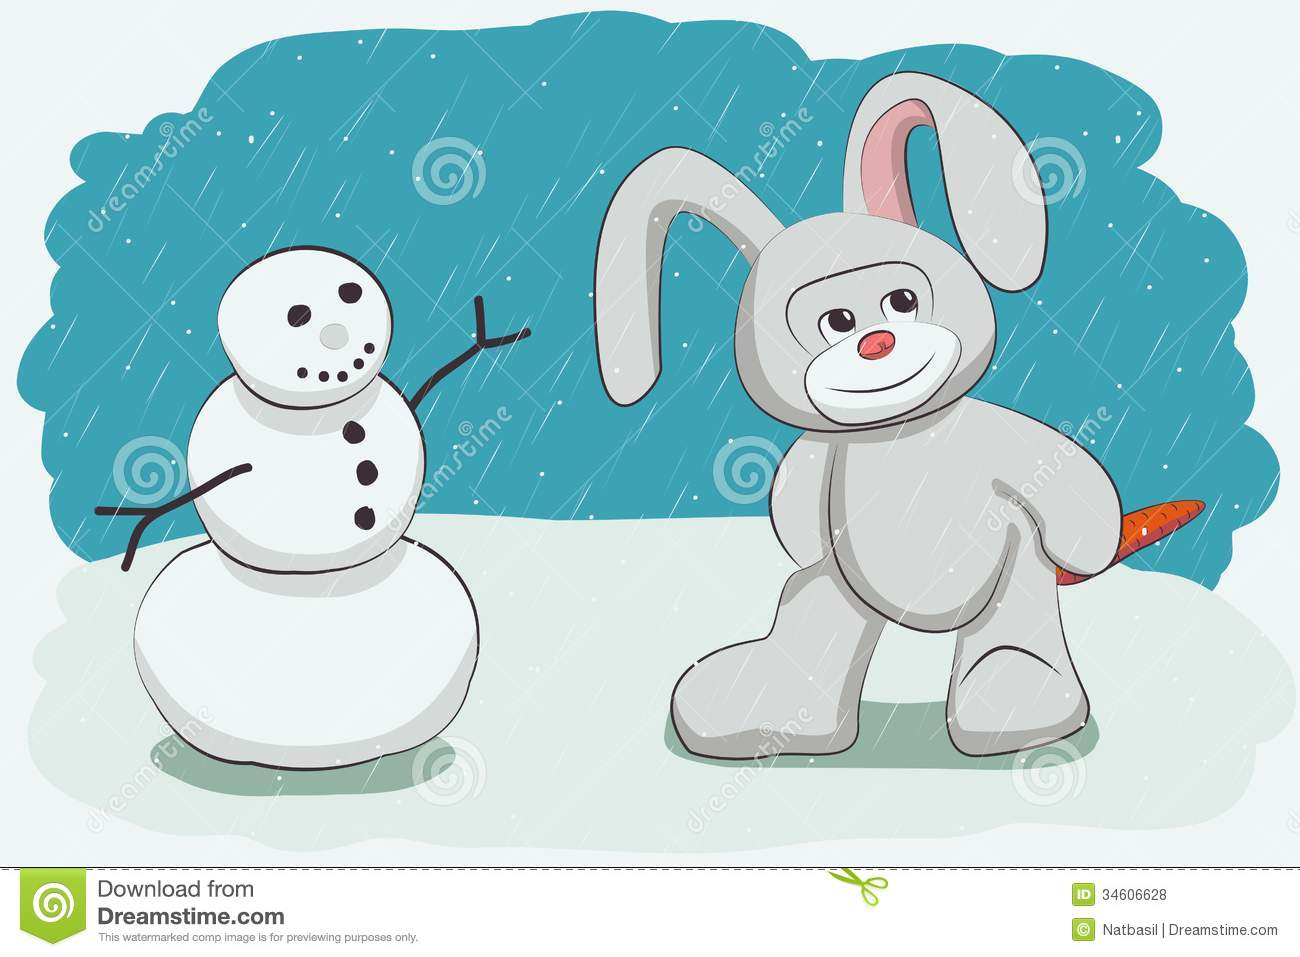 Snowman and bunny royalty free stock photos image 34606628